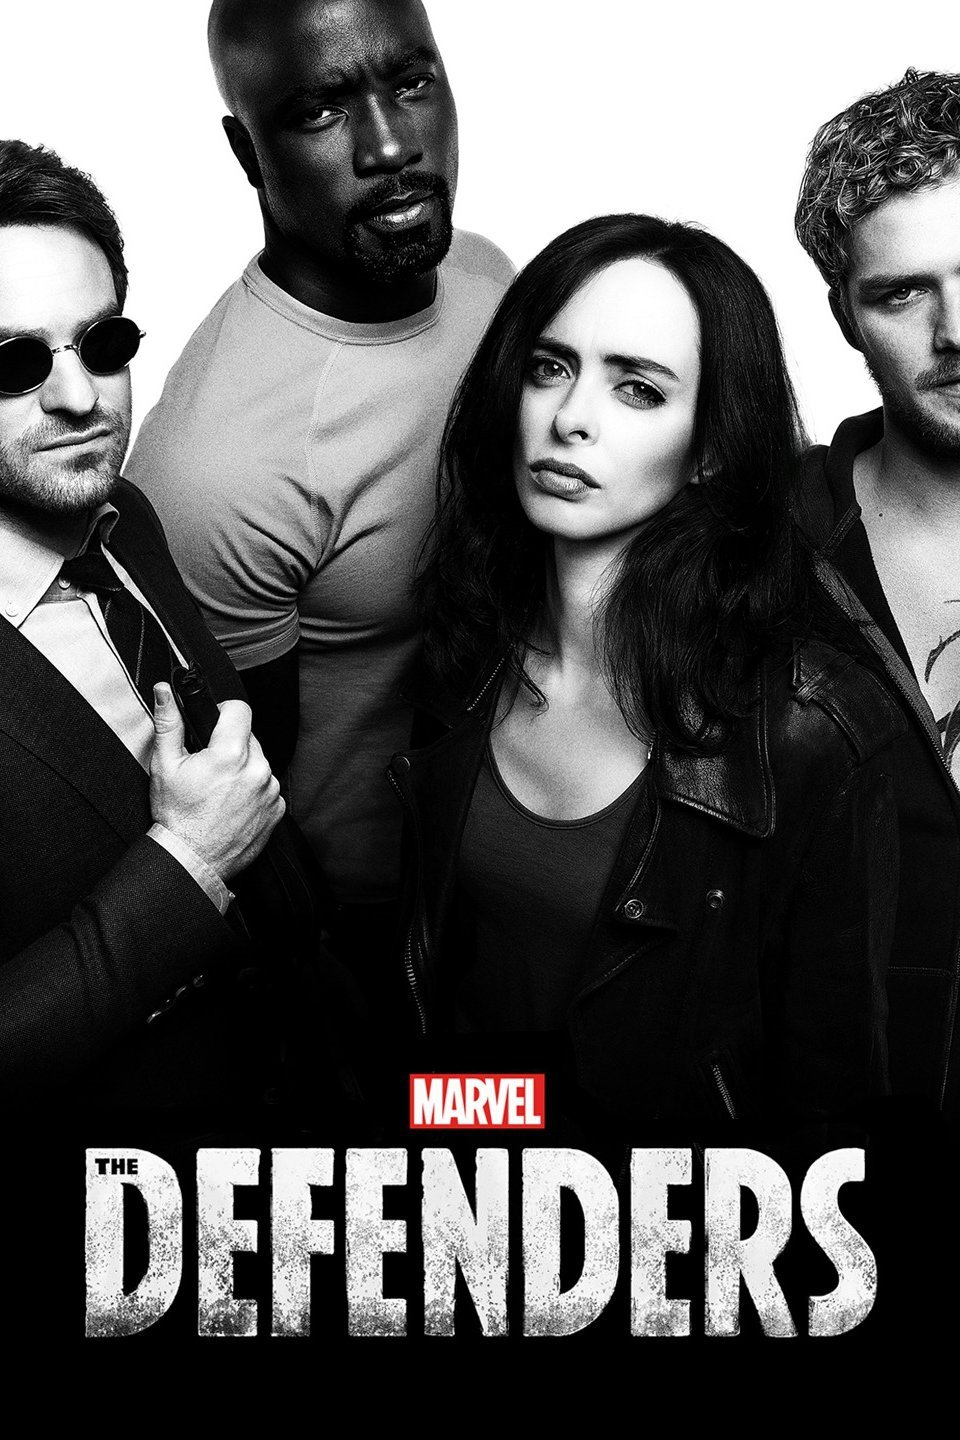 The Defenders Season 1 Complete Download 720p WEBRip